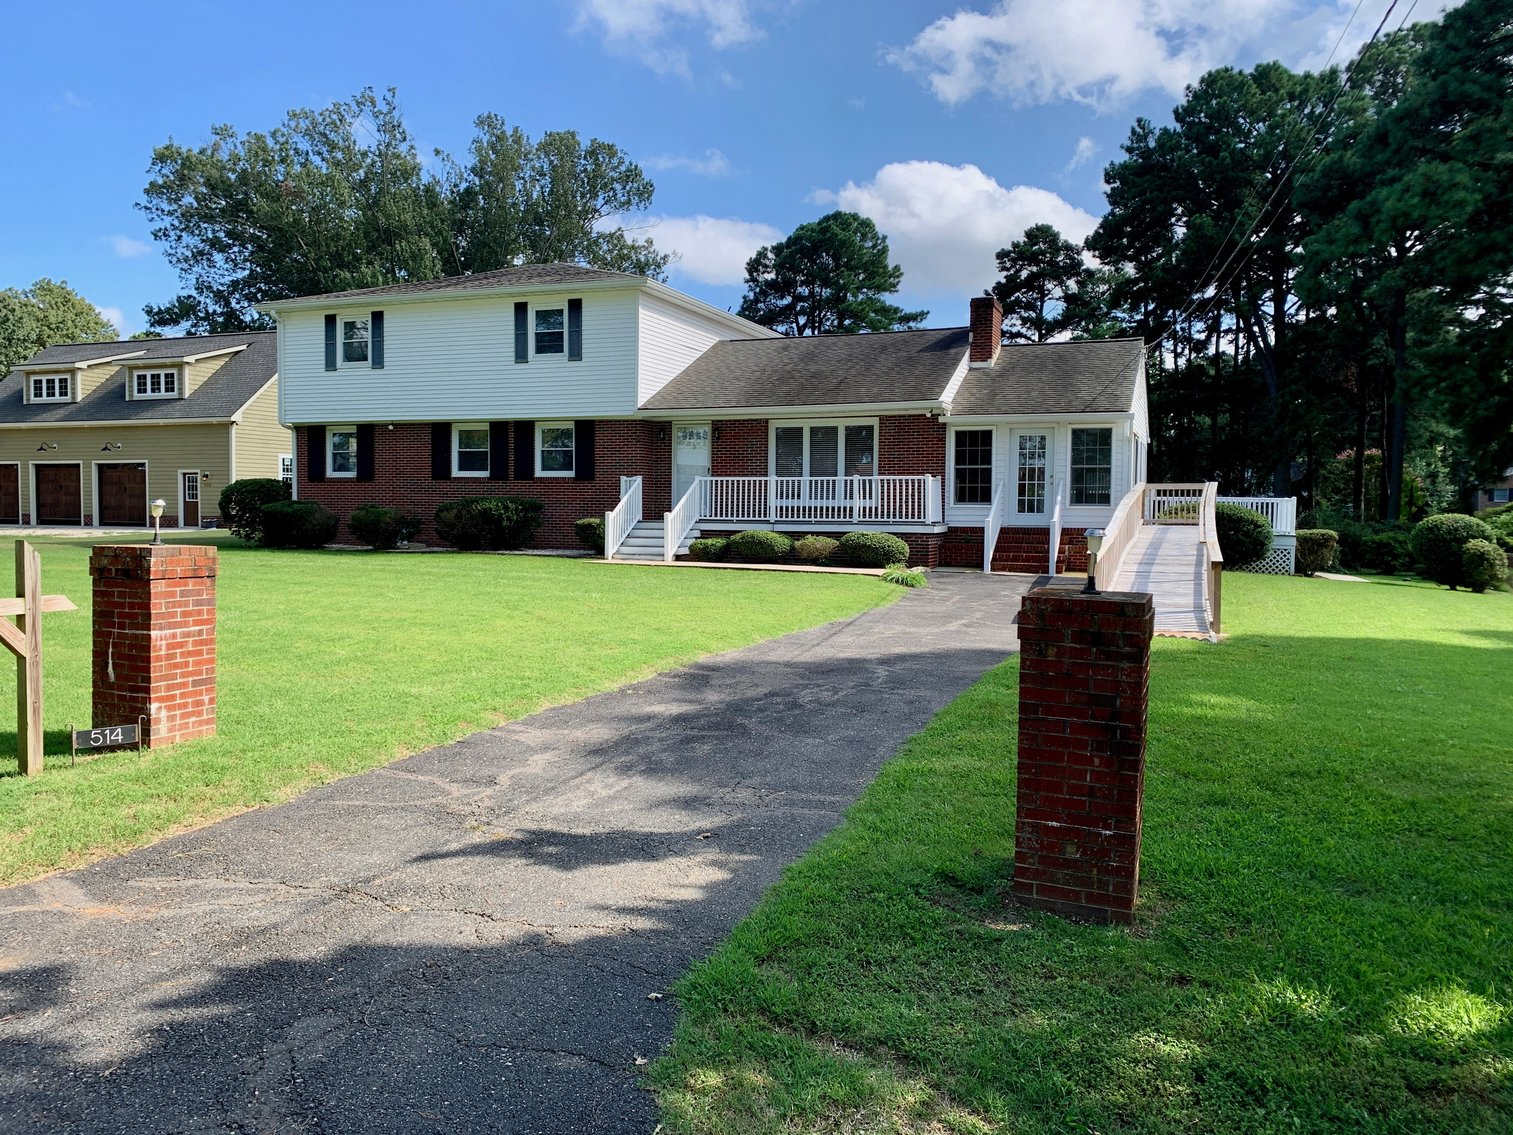 Image for 5 BR/2 BA Home w/Extra Lot, Rappahannock River View & Access**Only 1 Block Off the River in Tappahannock, VA